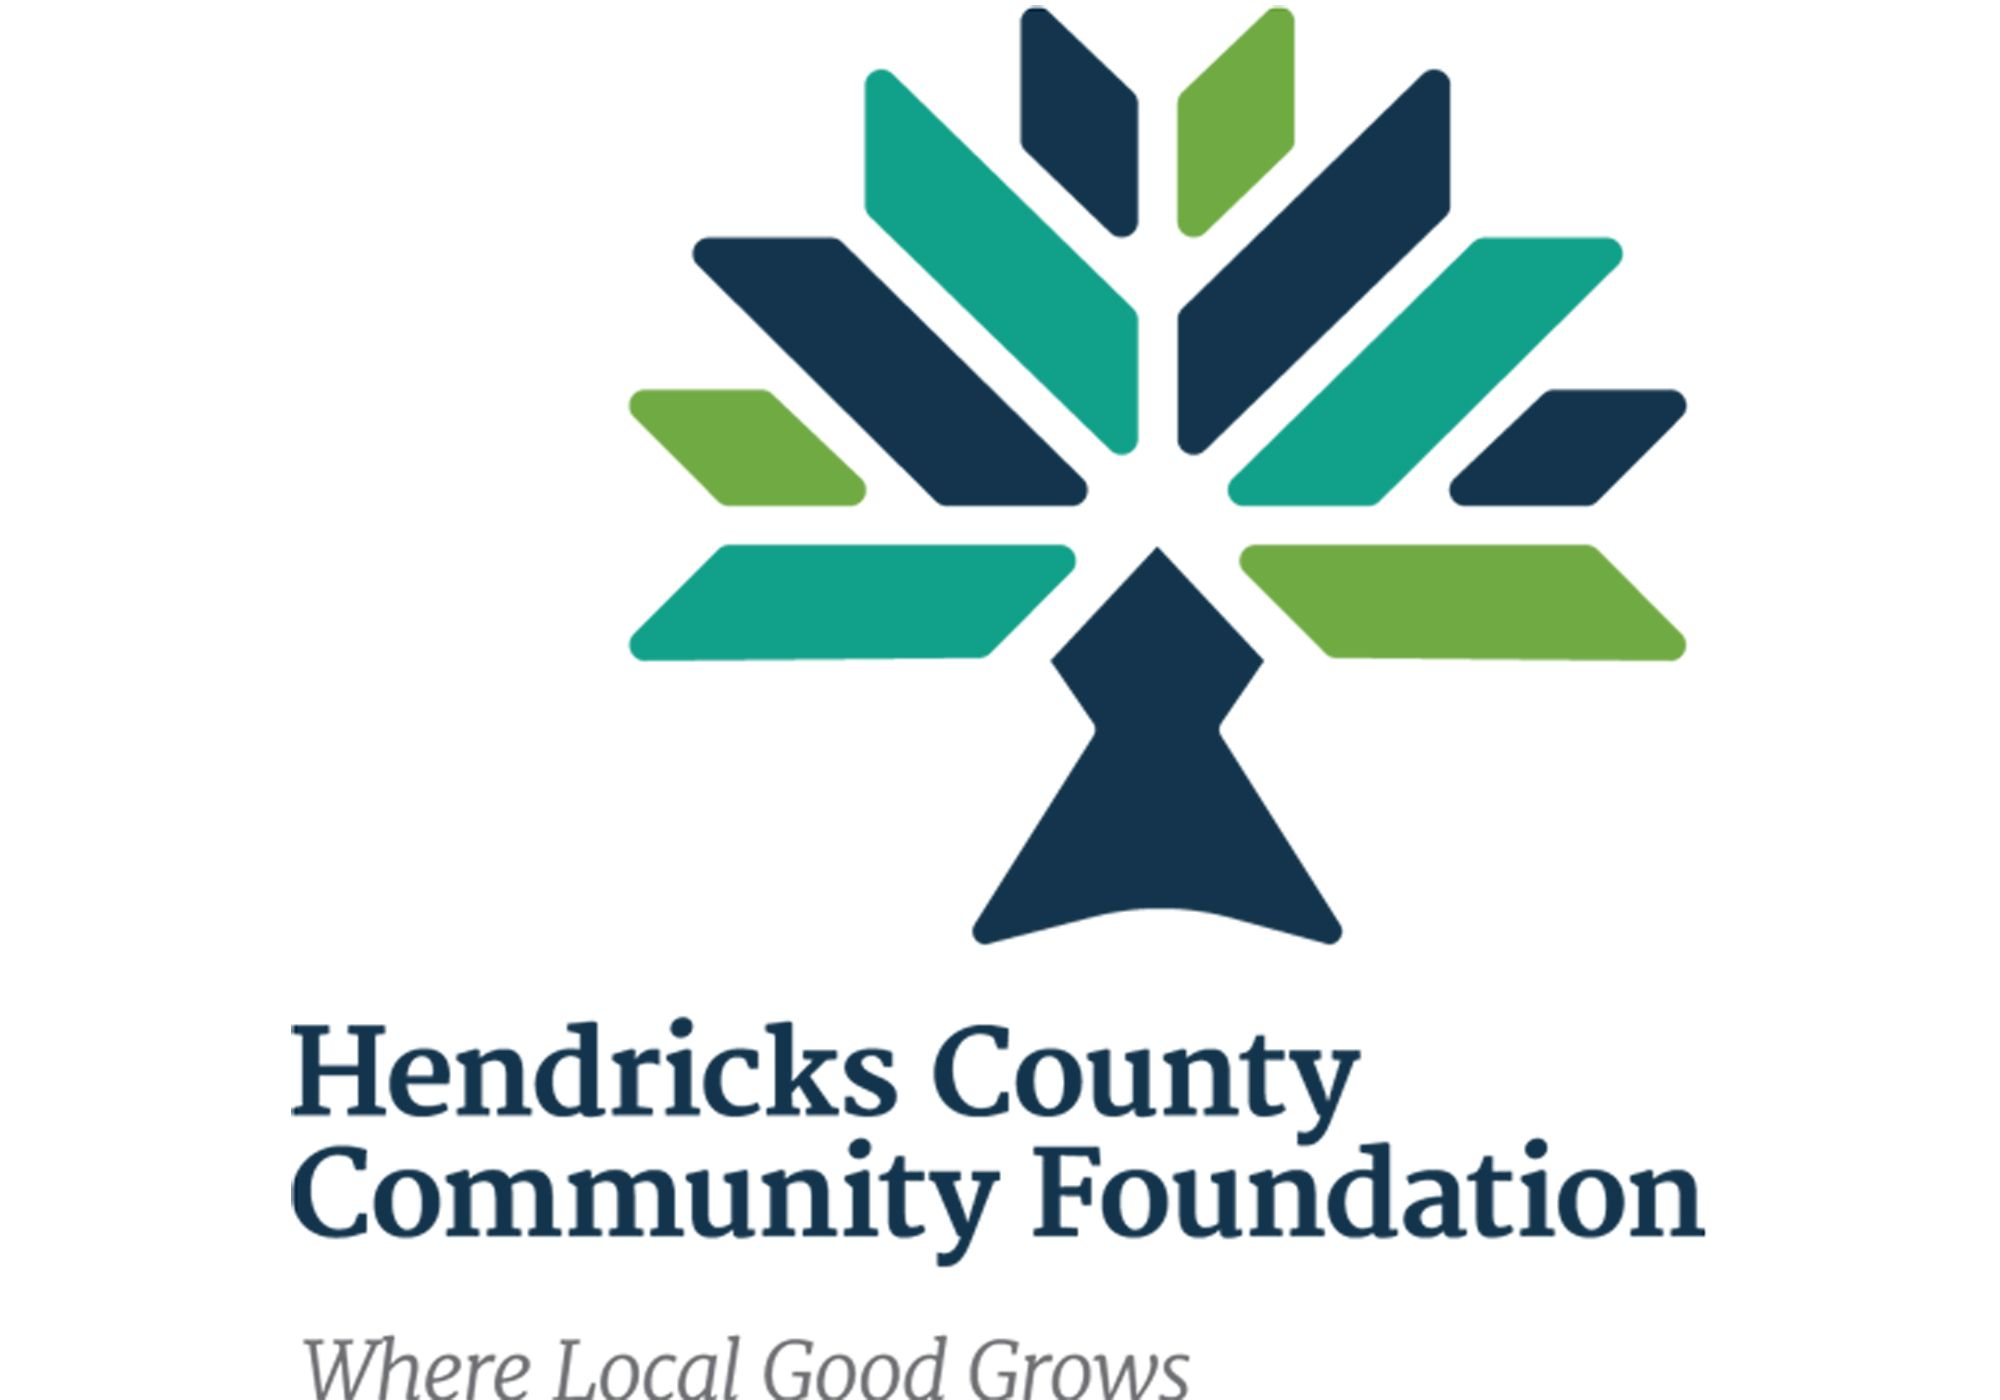 Community Foundation Awards over $25,000 in Grants